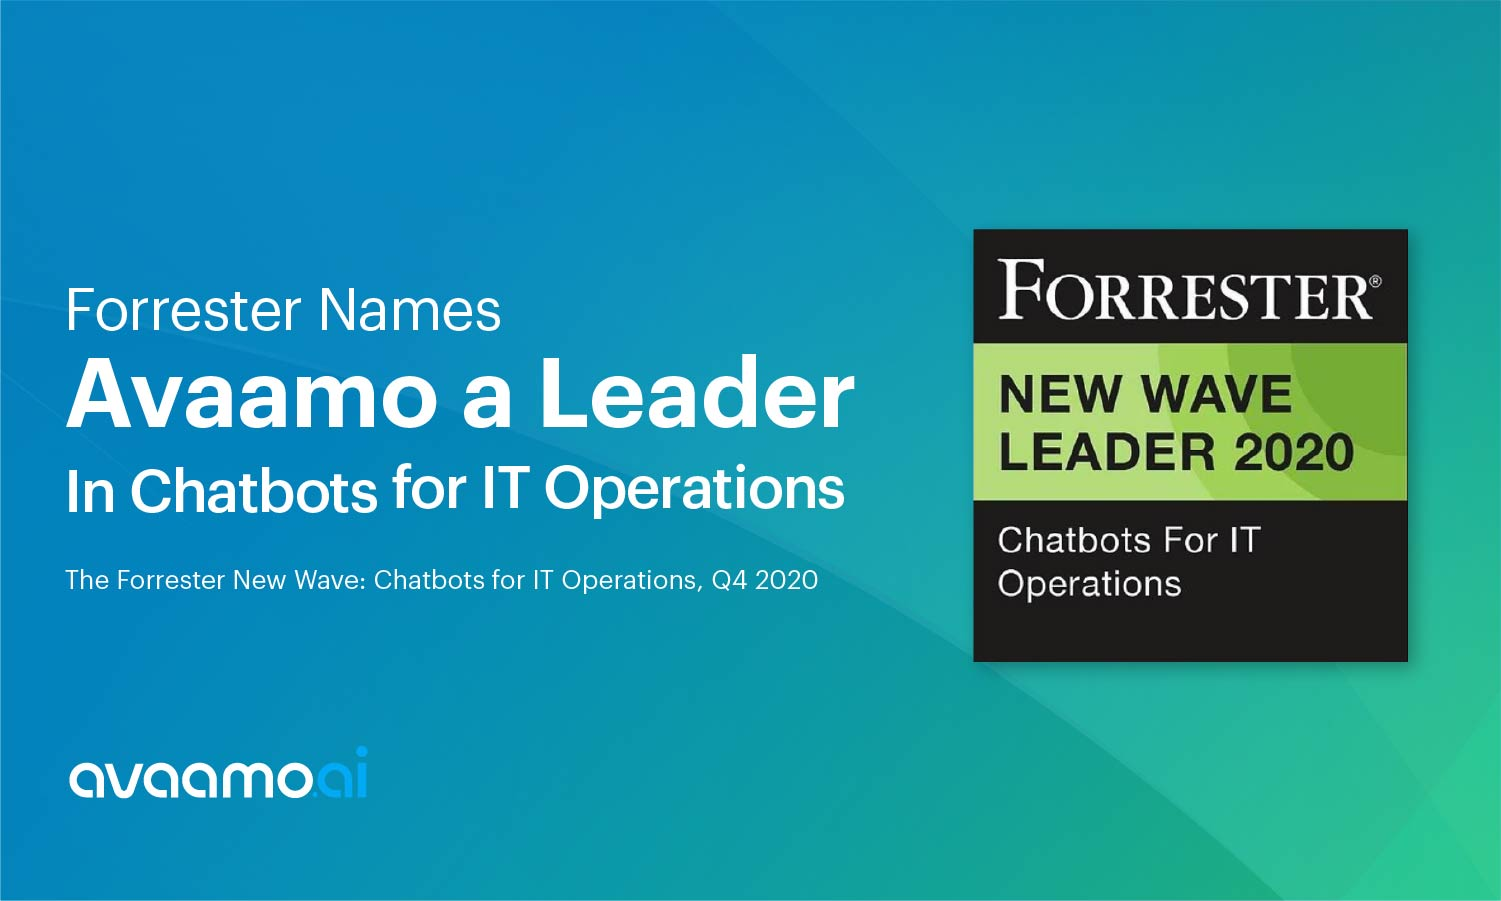 Forrester names Avaamo Leader in AI chatbots for IT operations